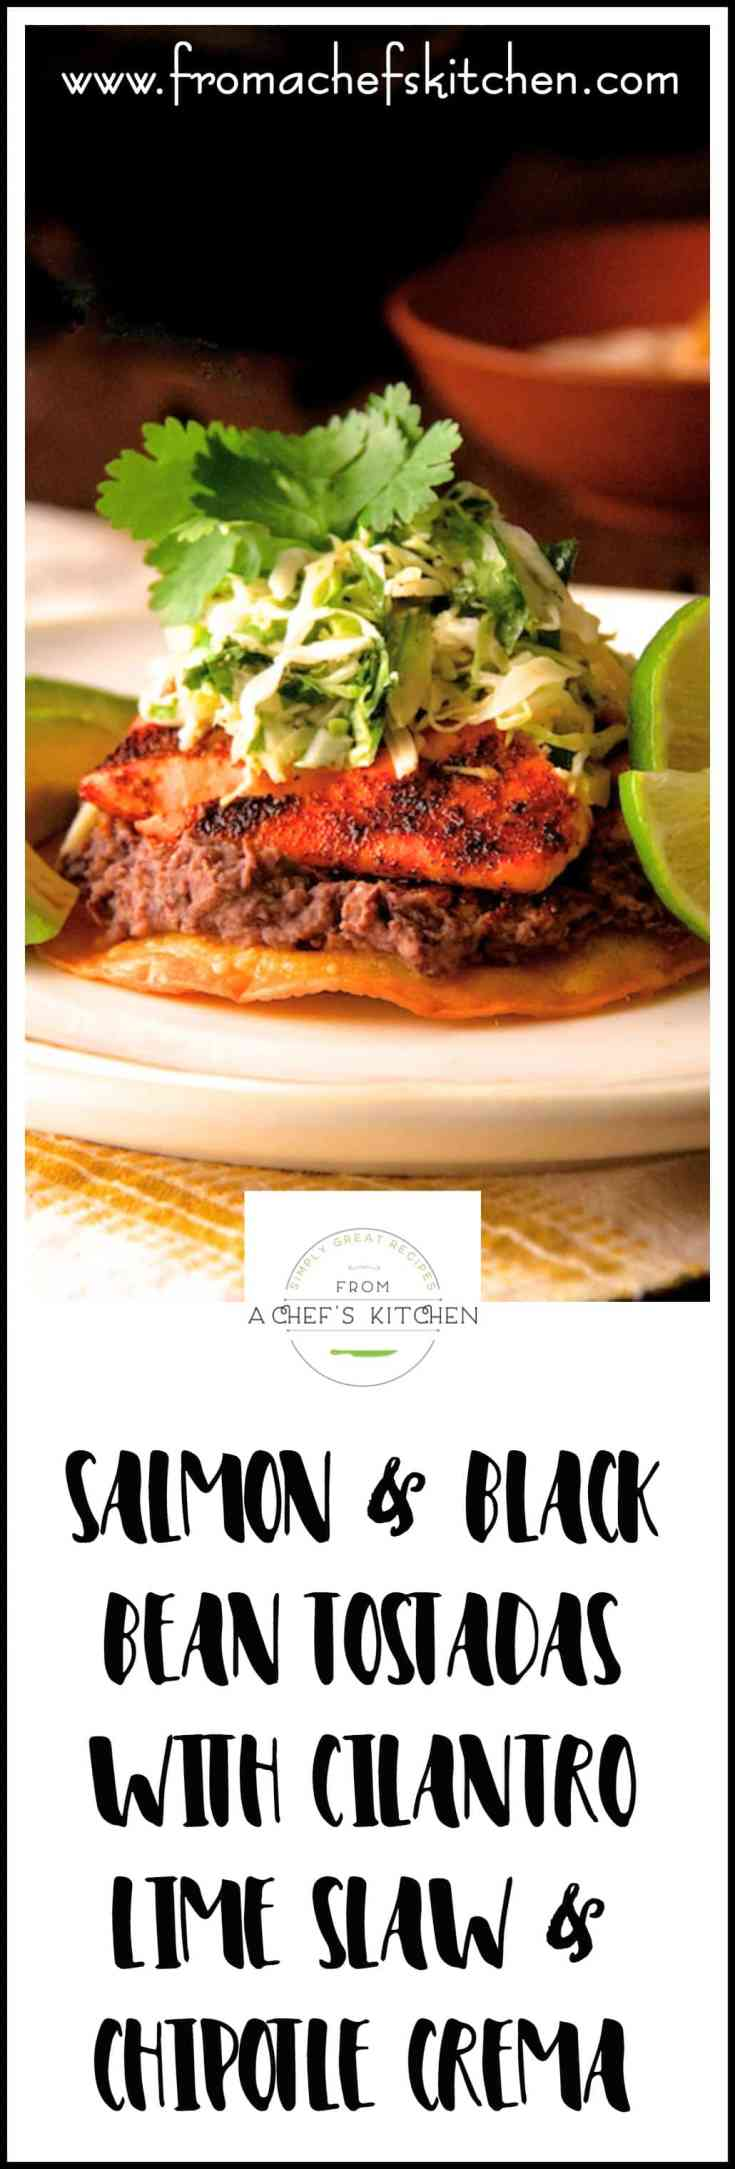 Salmon and Black Bean Tostadas with Cilantro Lime Slaw and Chipotle Crema are full of lively flavors for the perfect date night dinner for two. They may even turn a salmon hater into a salmon lover! #salmon #fish #fishrecipes #Mexican #tostadarecipes